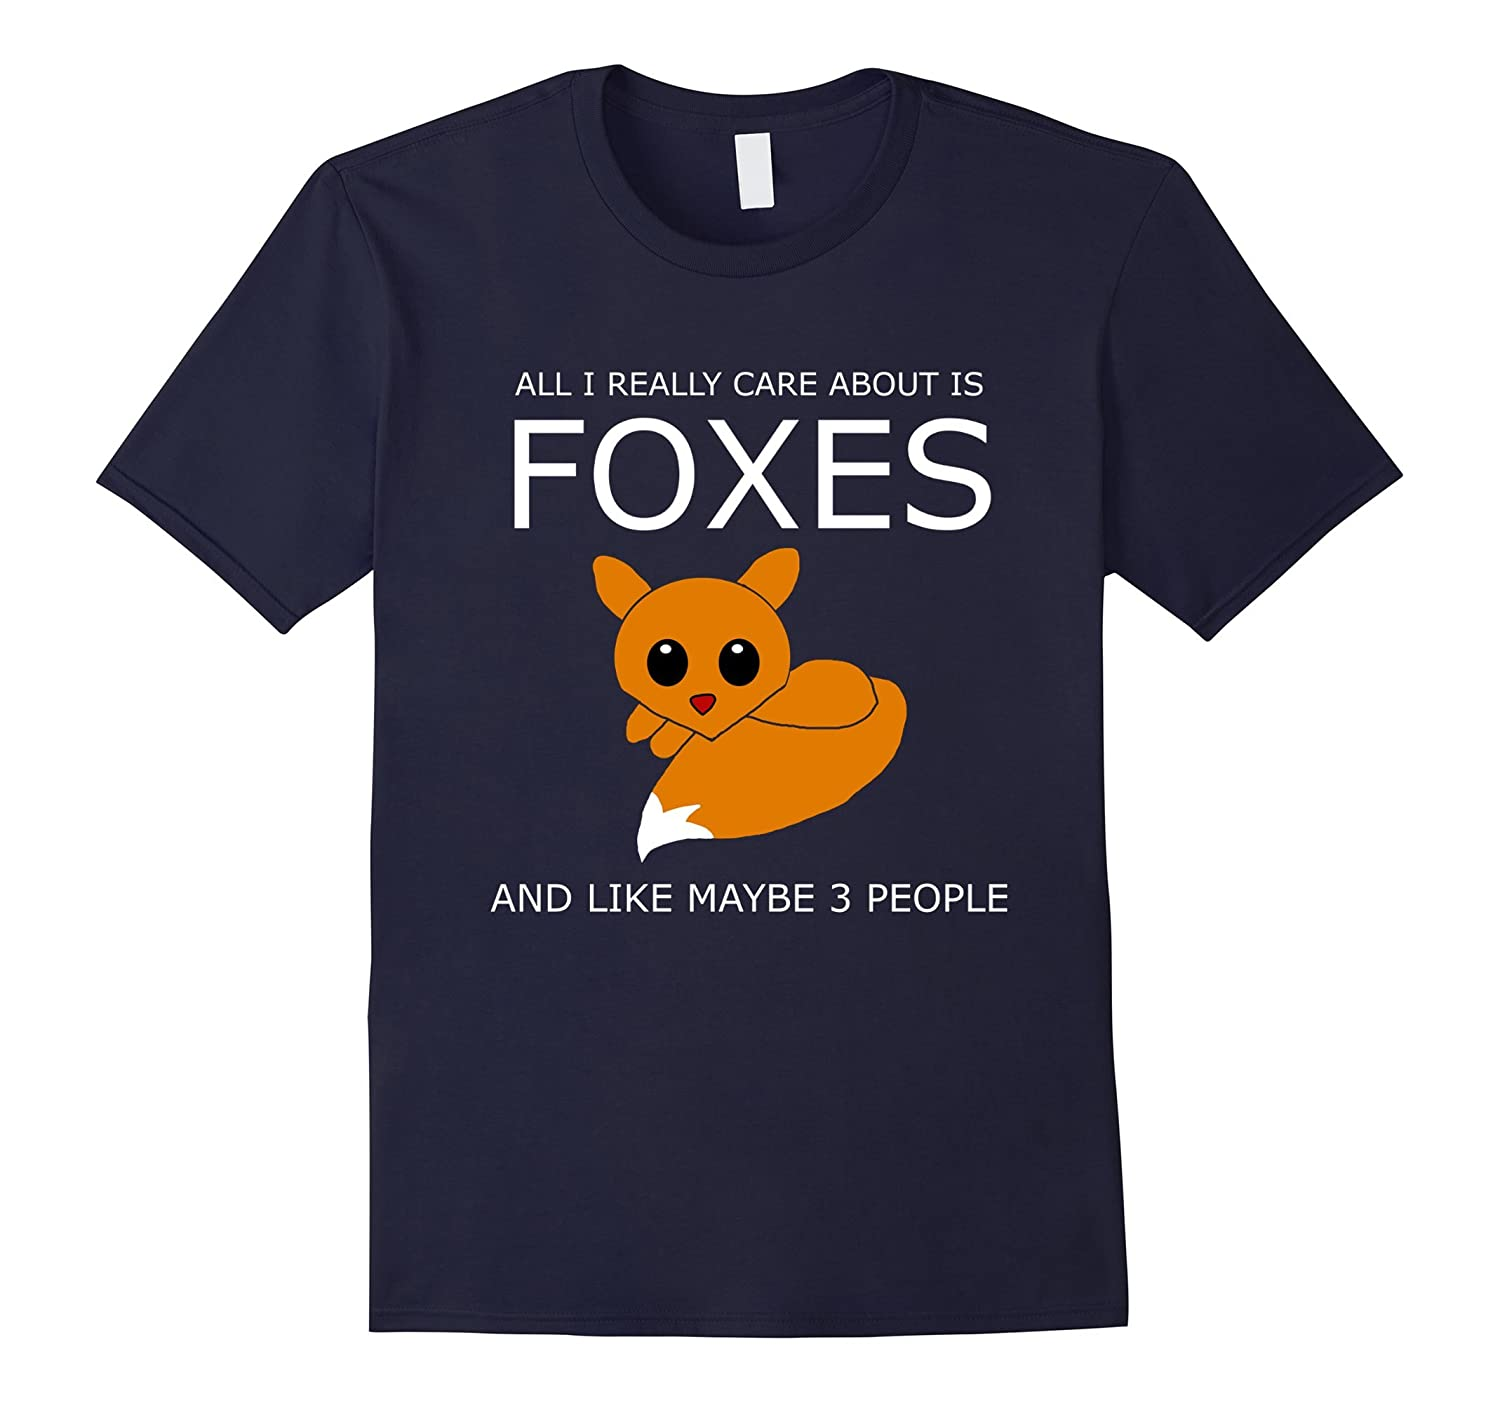 All I Really Care About Is Foxes T Shirt-Vaci